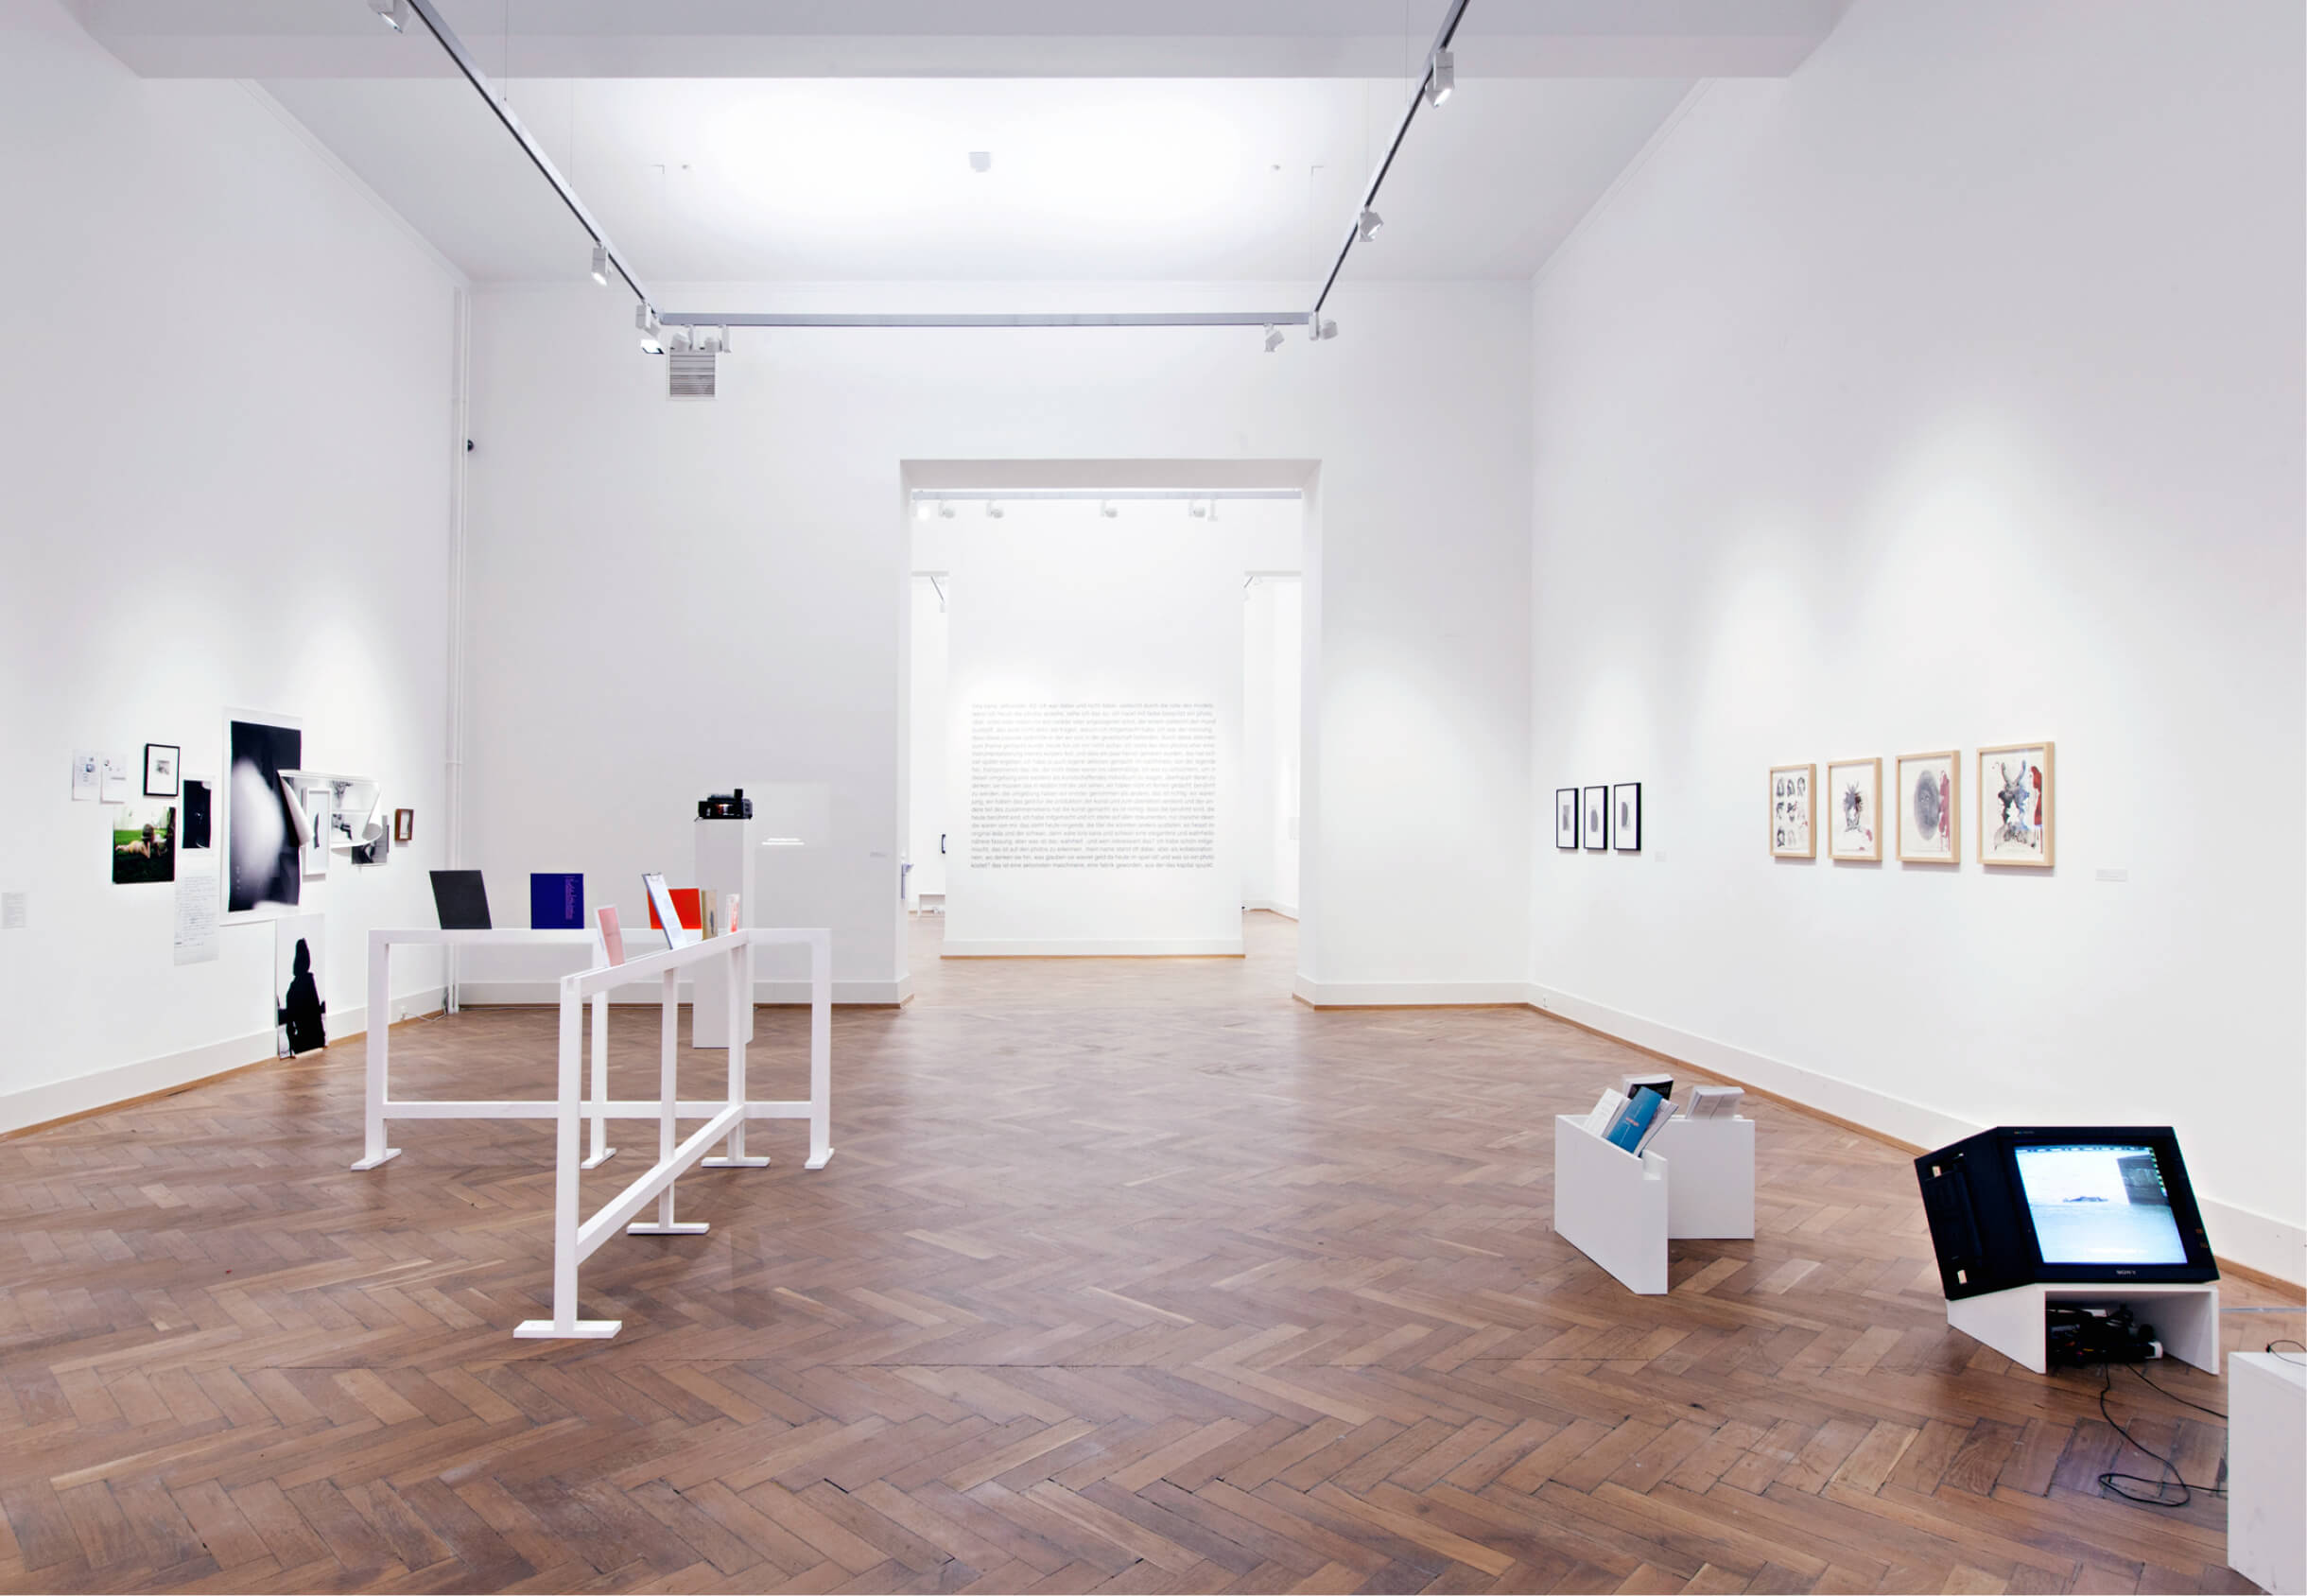 Installation View – Room 03